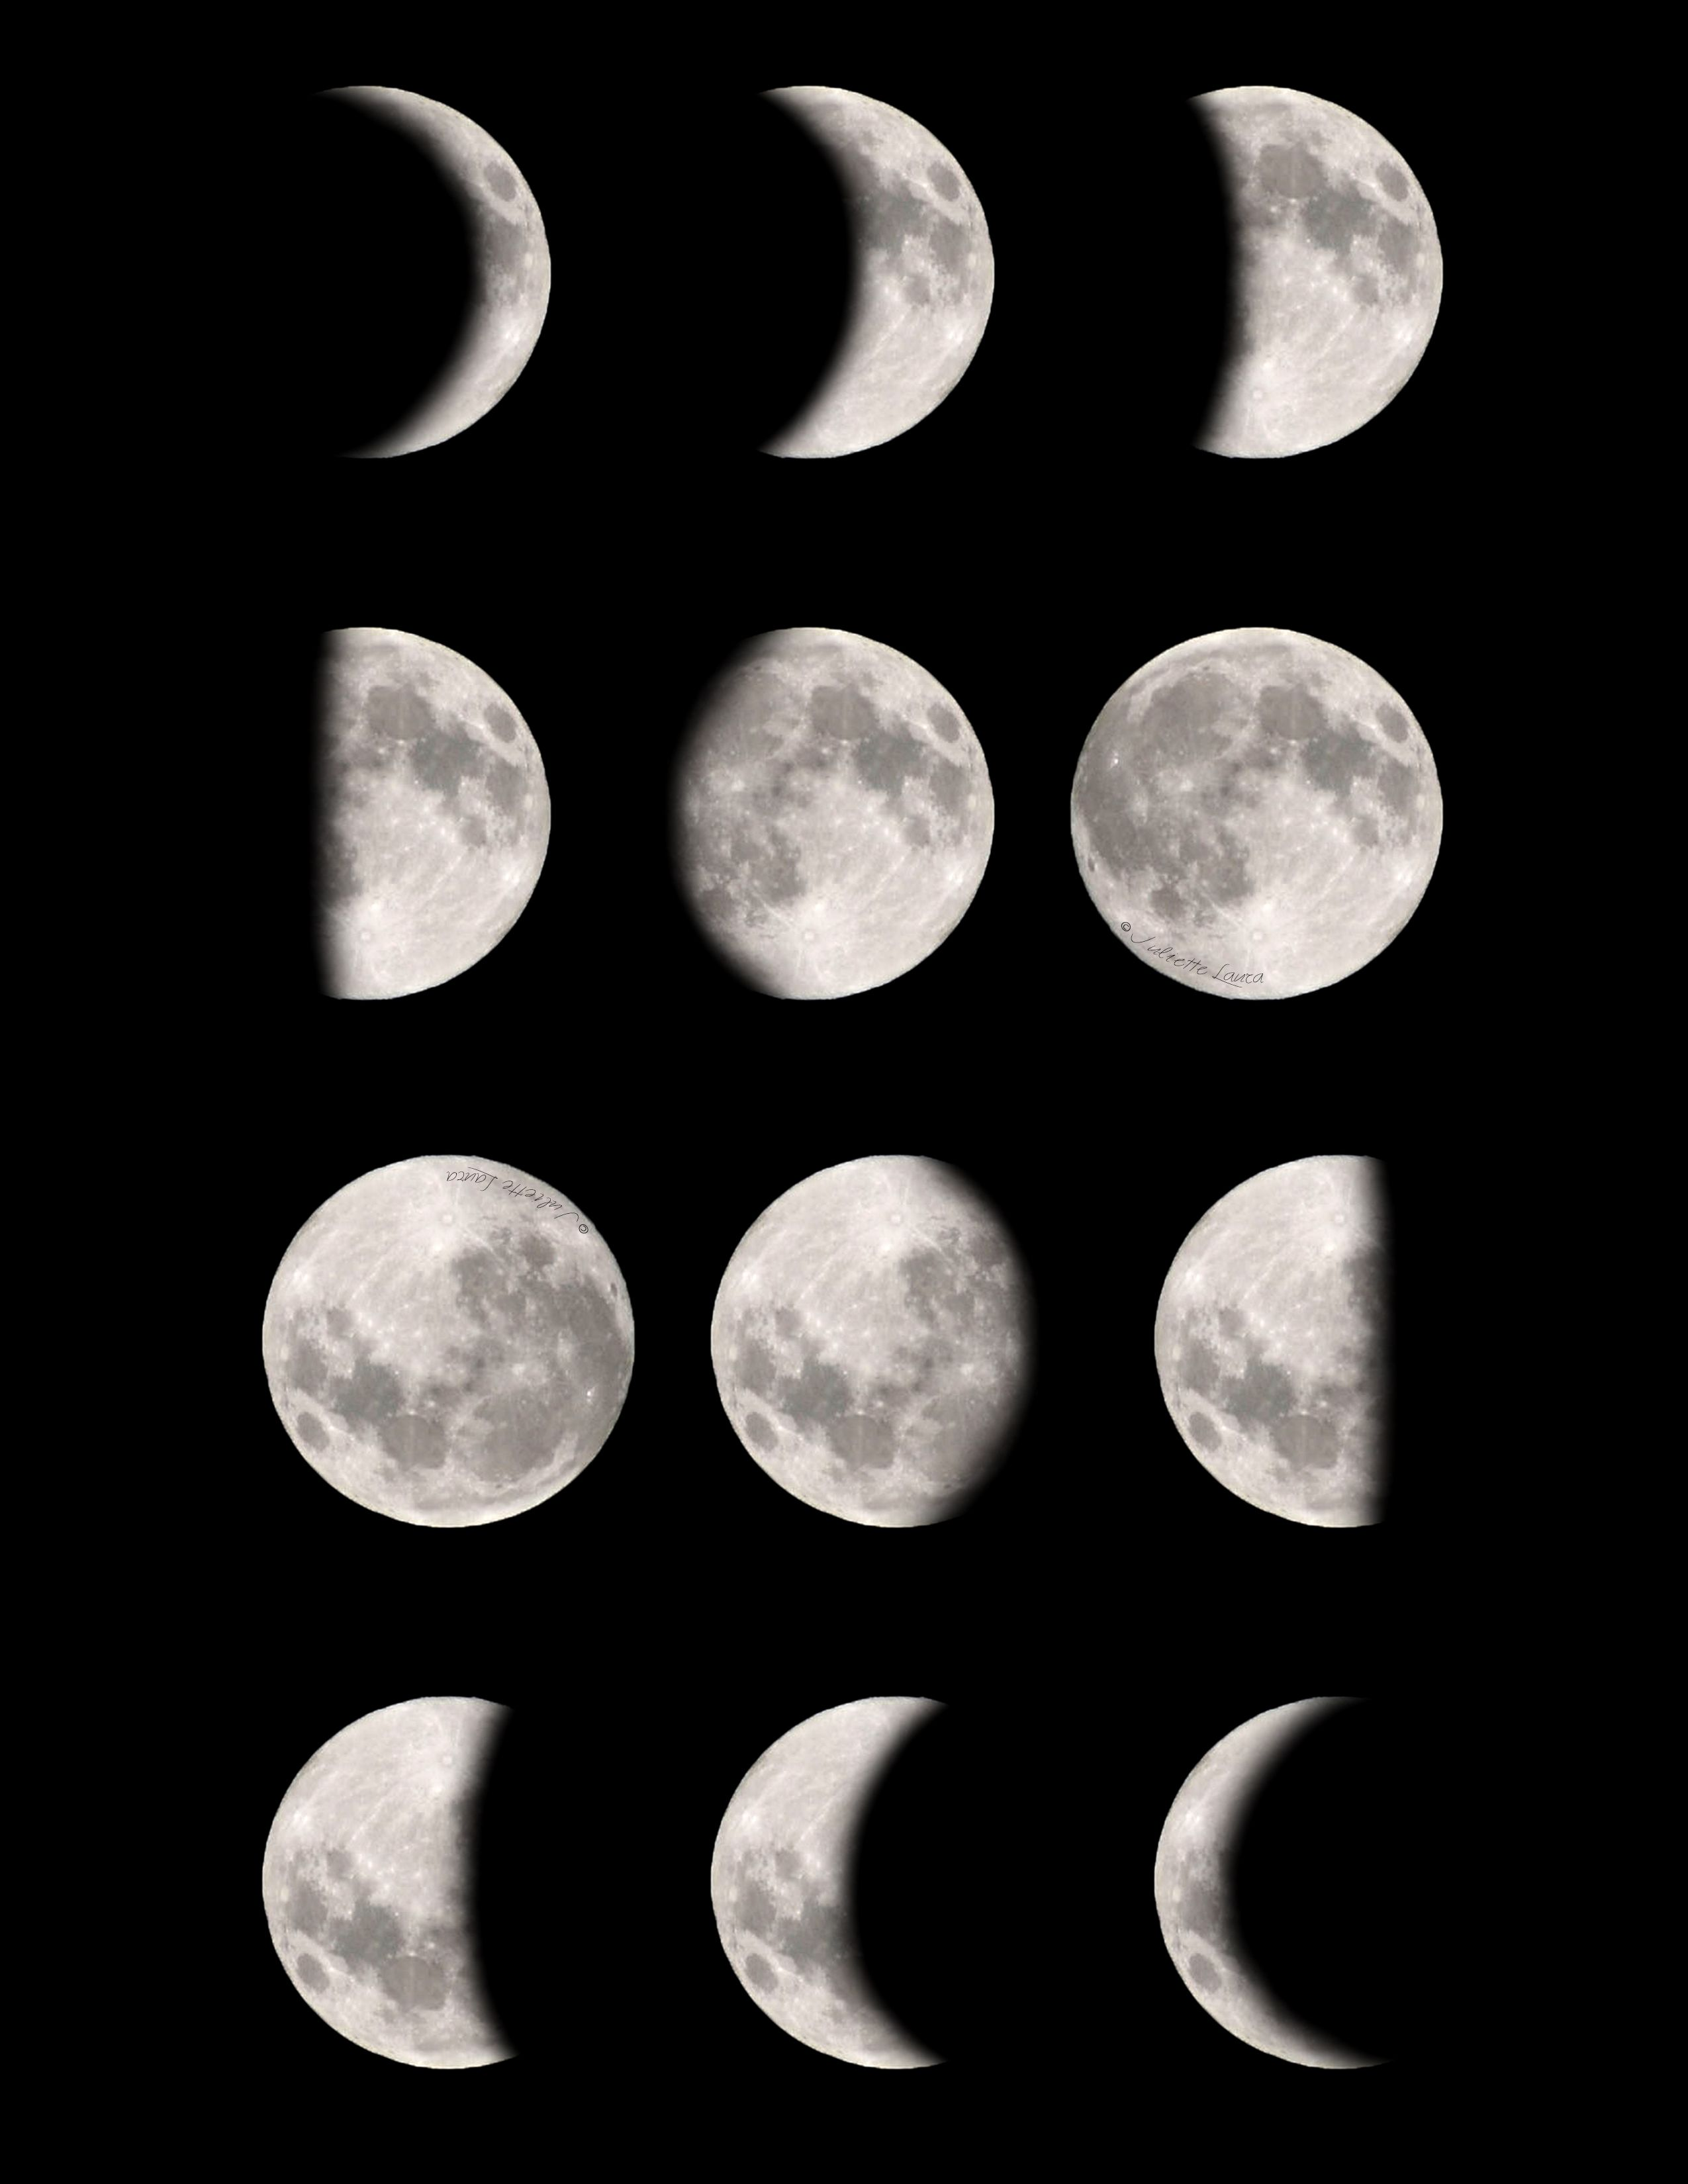 graphic relating to Moon Phases Printable identify Moon levels no cost, downloadable printable! Most straightforward Crafts